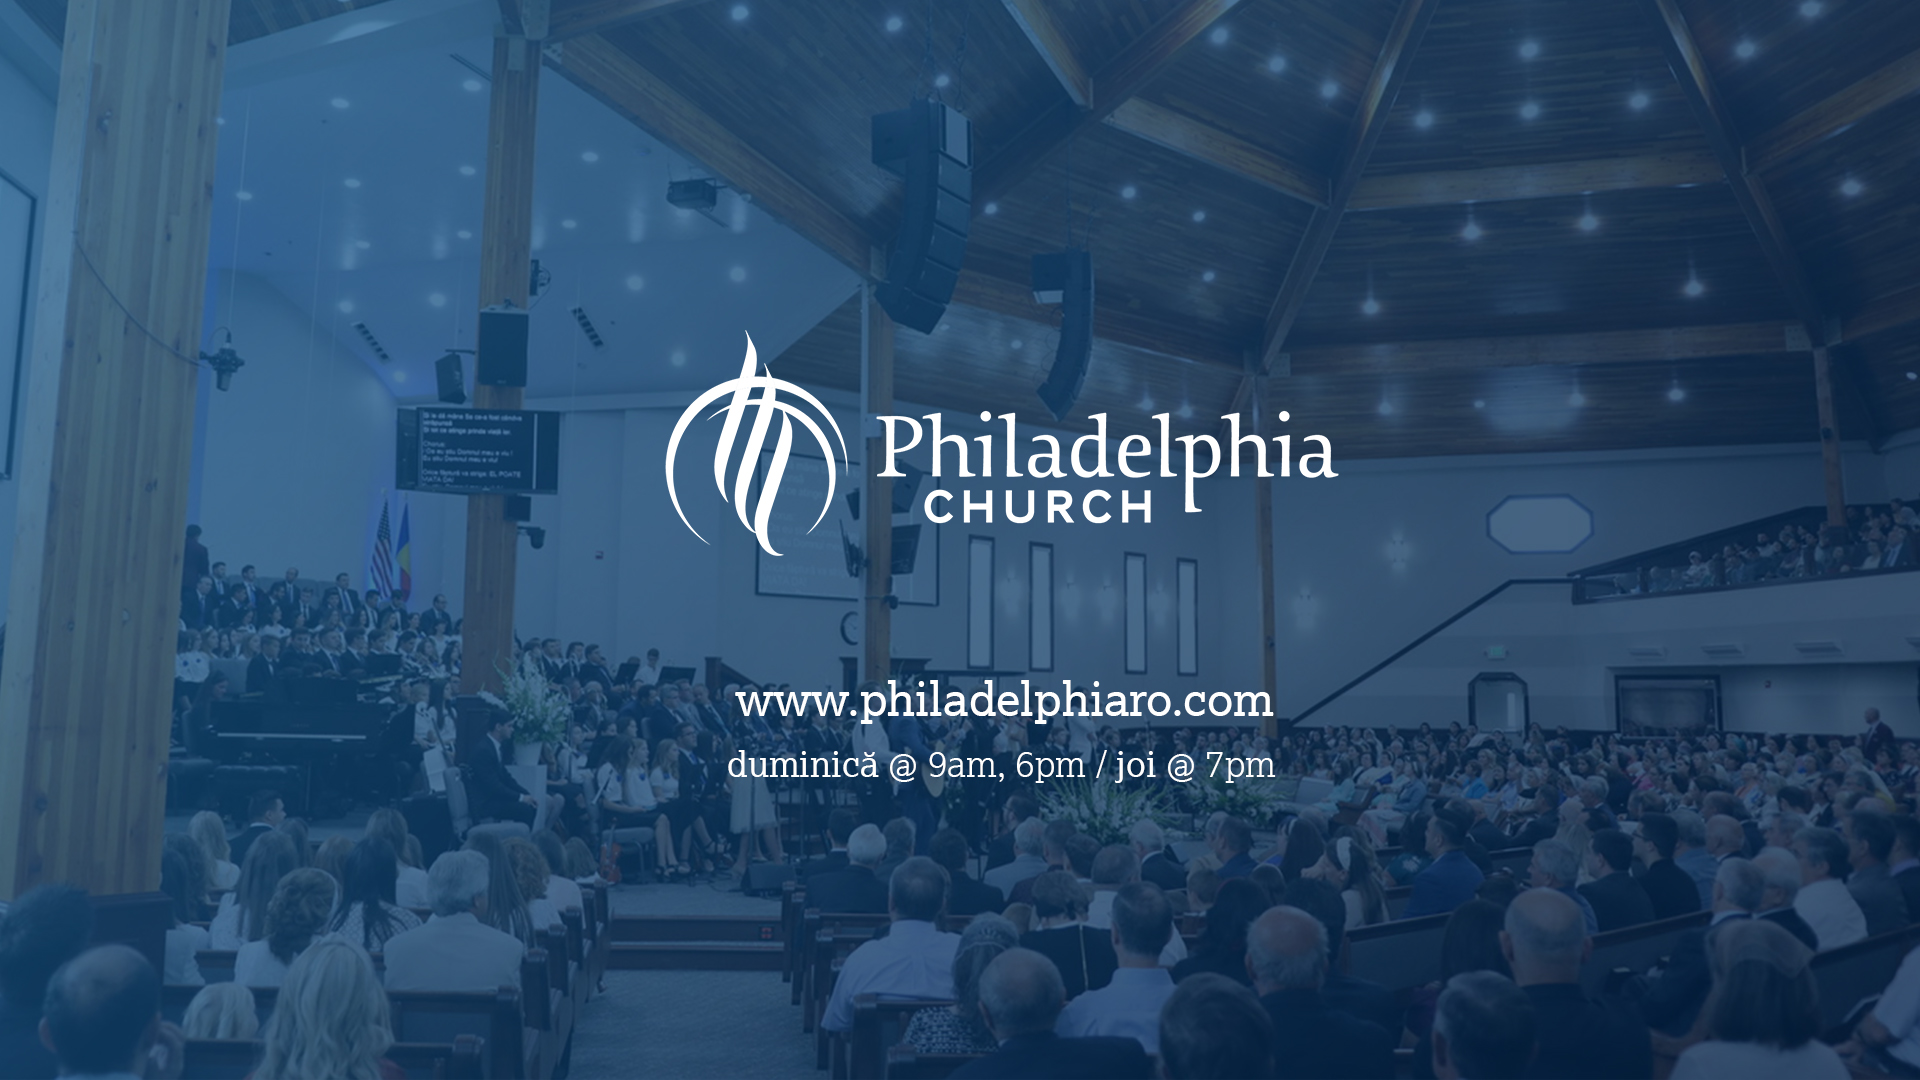 Philadelphia Romanian Pentecostal Church -